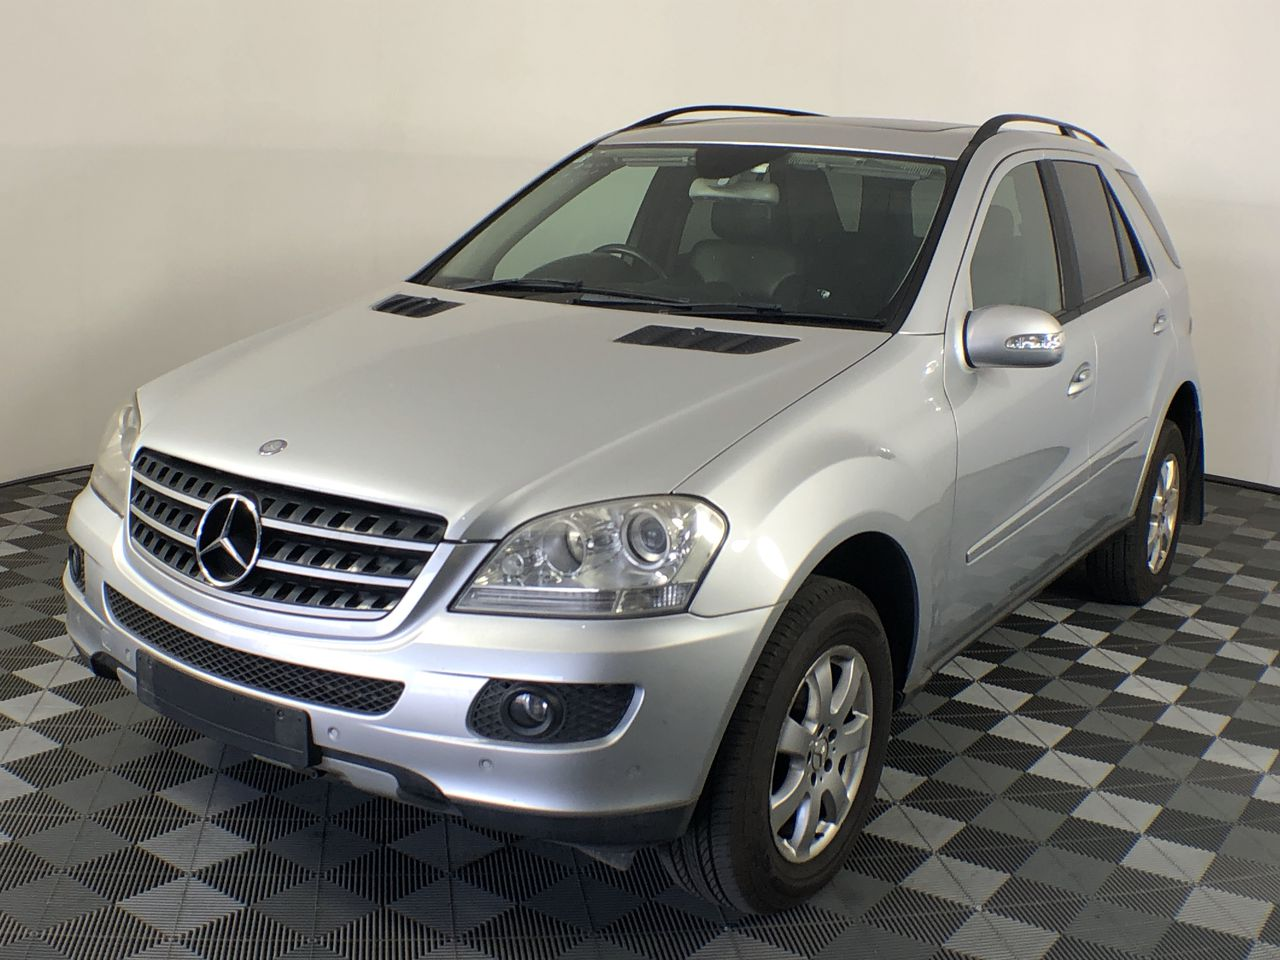 2005 Mercedes Benz ML 320 CDI (4x4) W164 Turbo Diesel Automatic Wagon